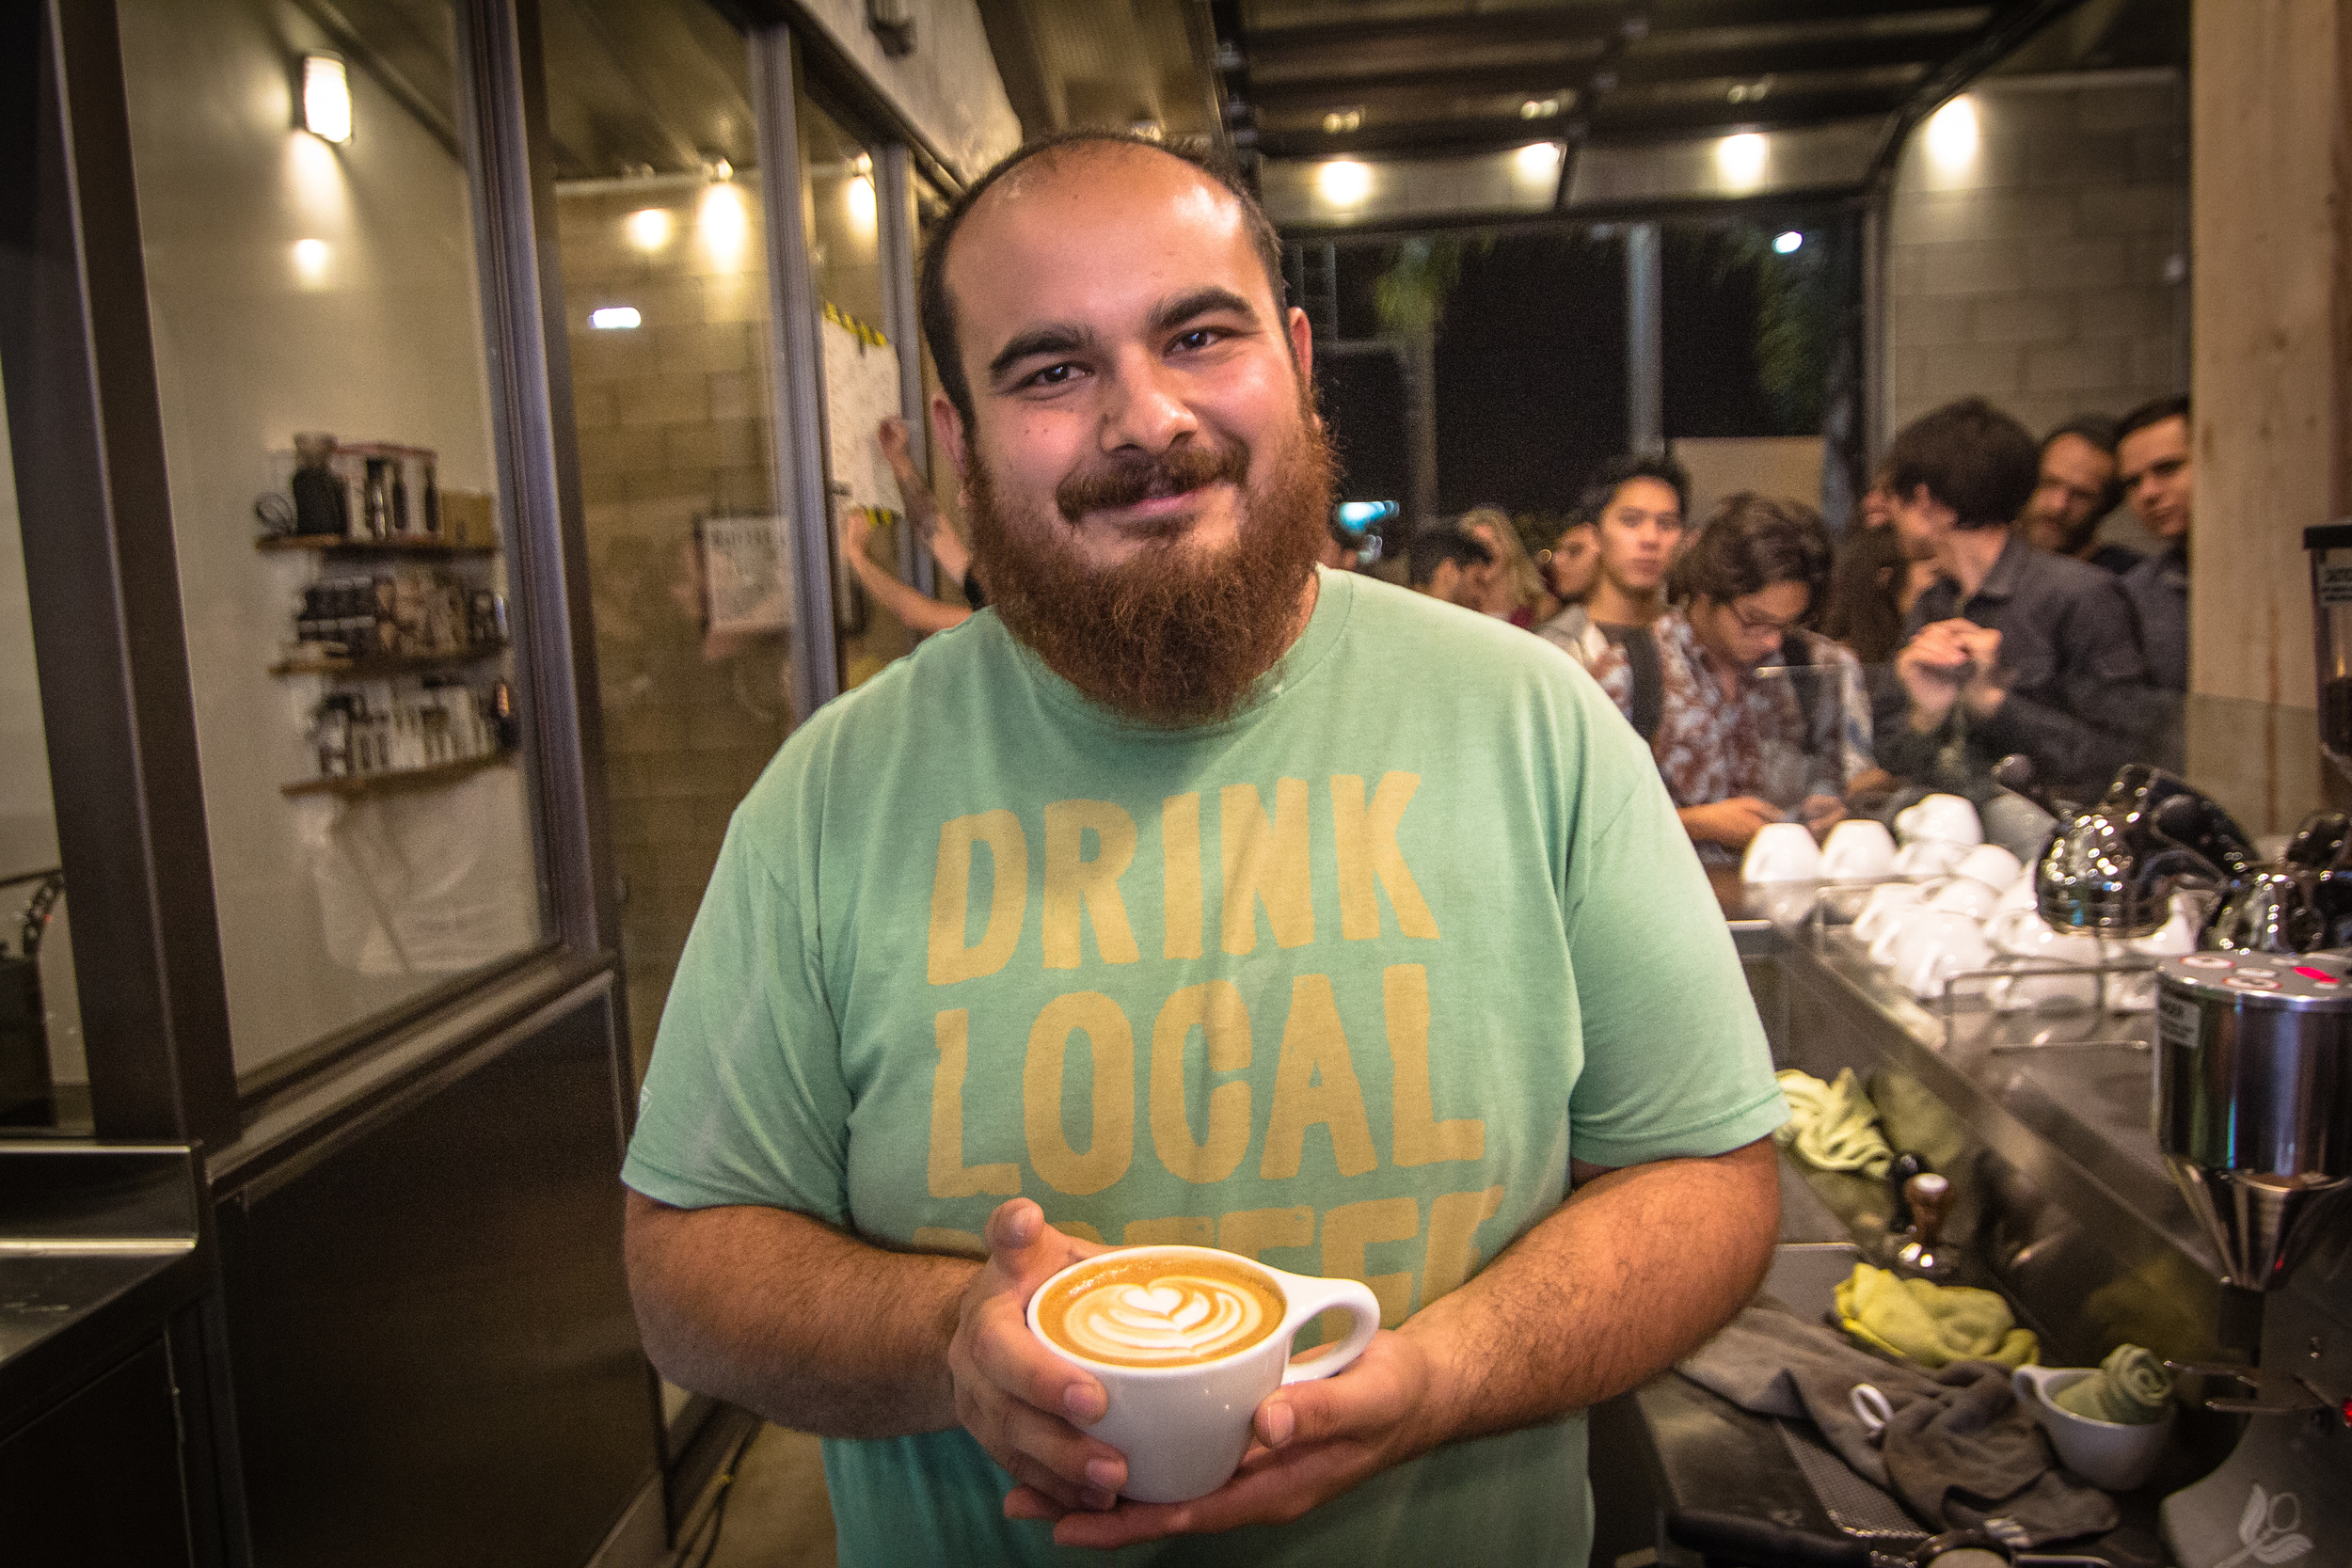 And the winner is... Austin Graham Amento of Augie's Coffee House, Redlands, CA!